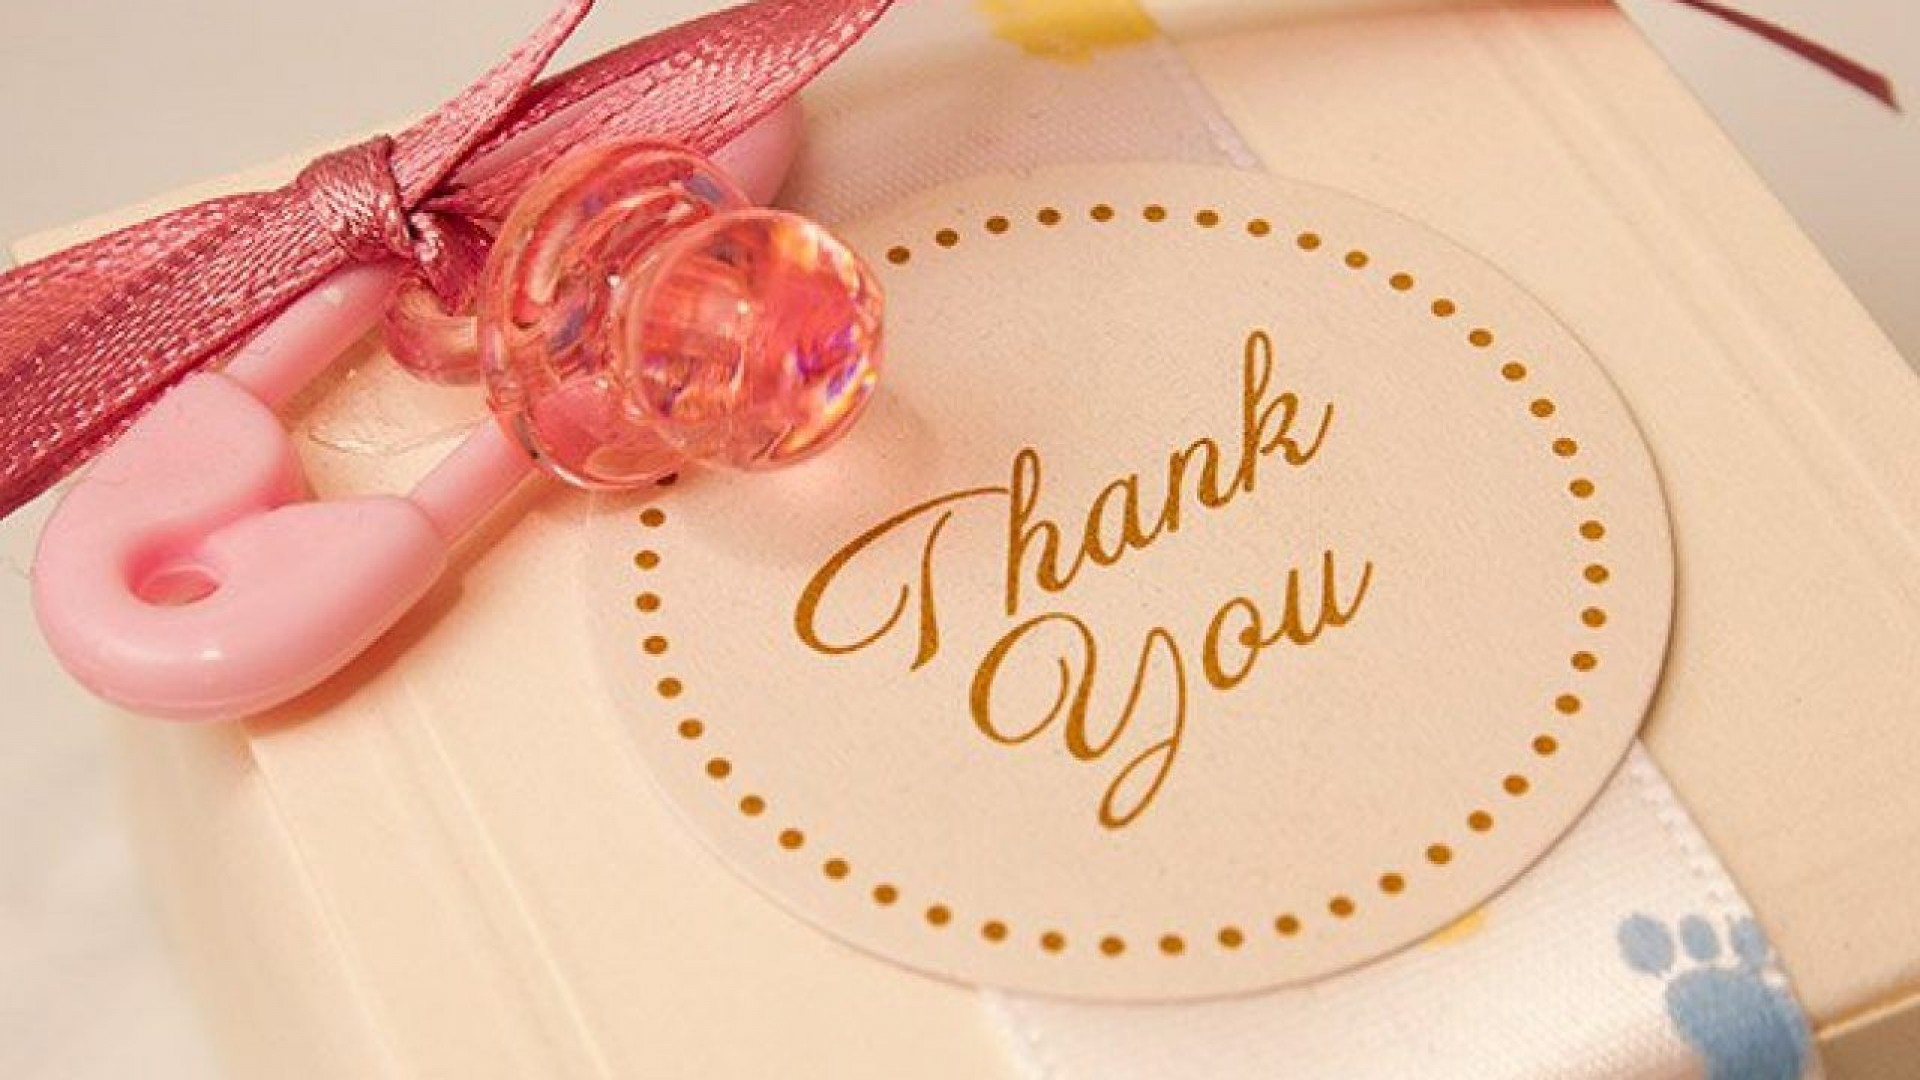 006 Stupendou Thank You Card Wording For Baby Shower Group Gift Picture 1920